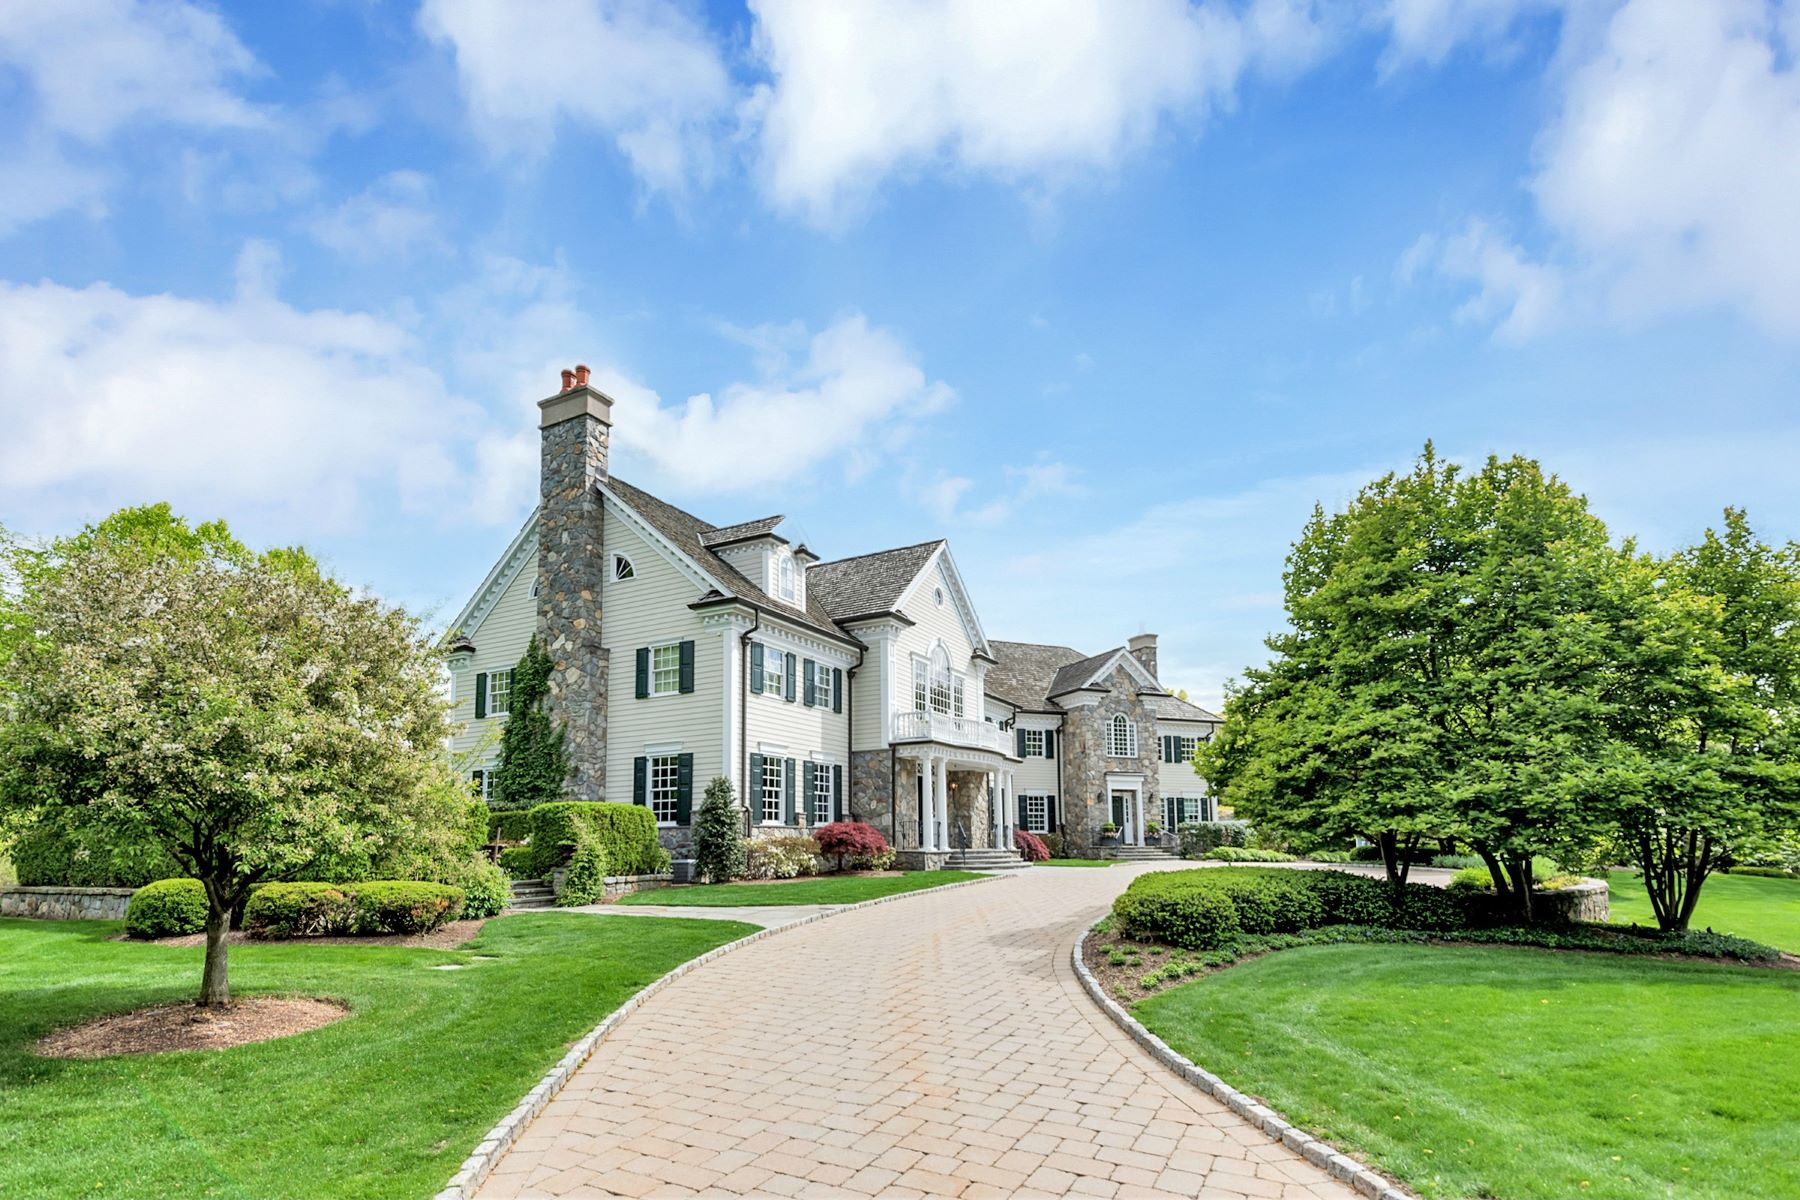 Single Family Home for Sale at Spectacular Private Oasis 930 Old Mill Road Franklin Lakes, New Jersey 07417 United States